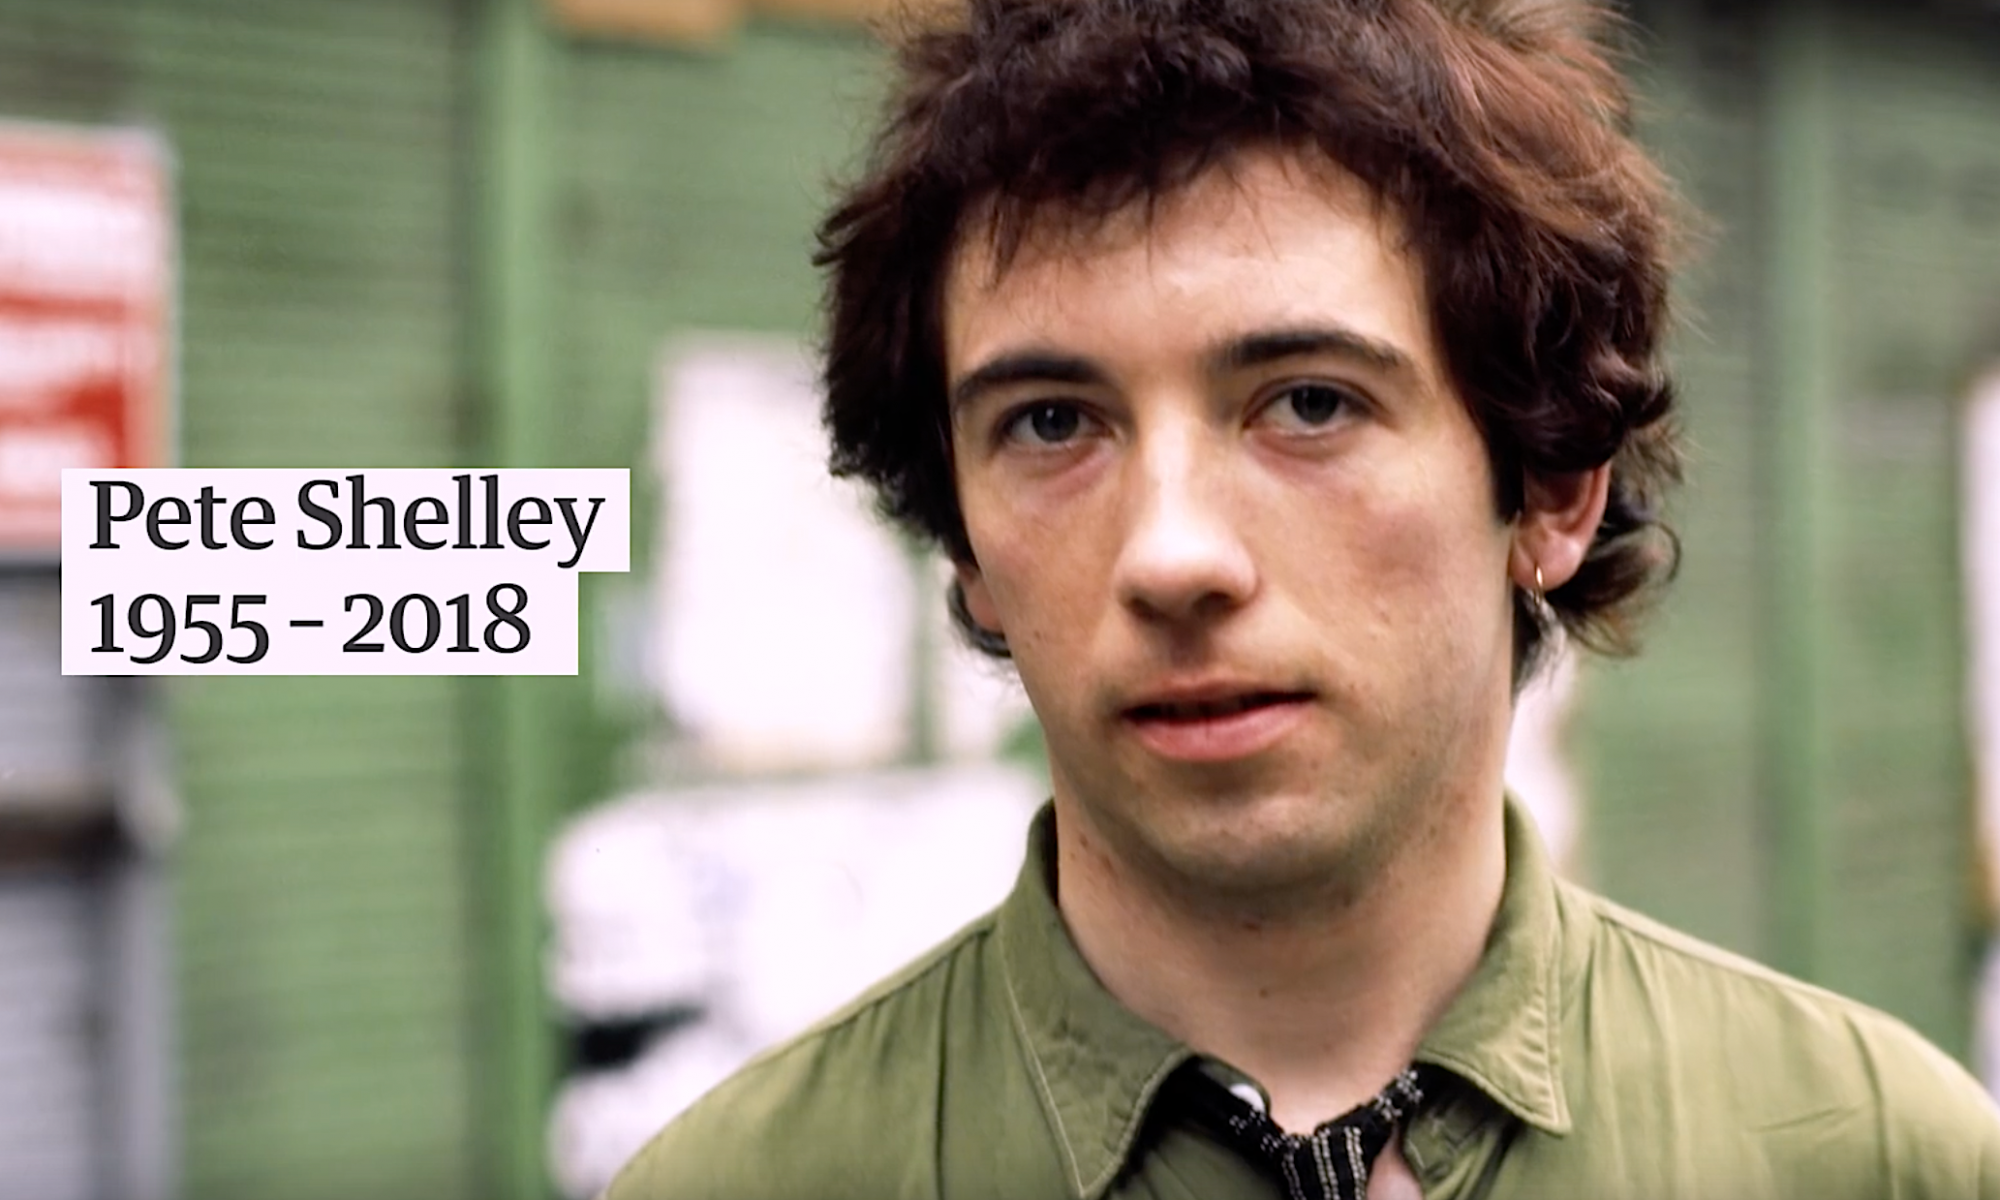 Pete Shelley verstorben